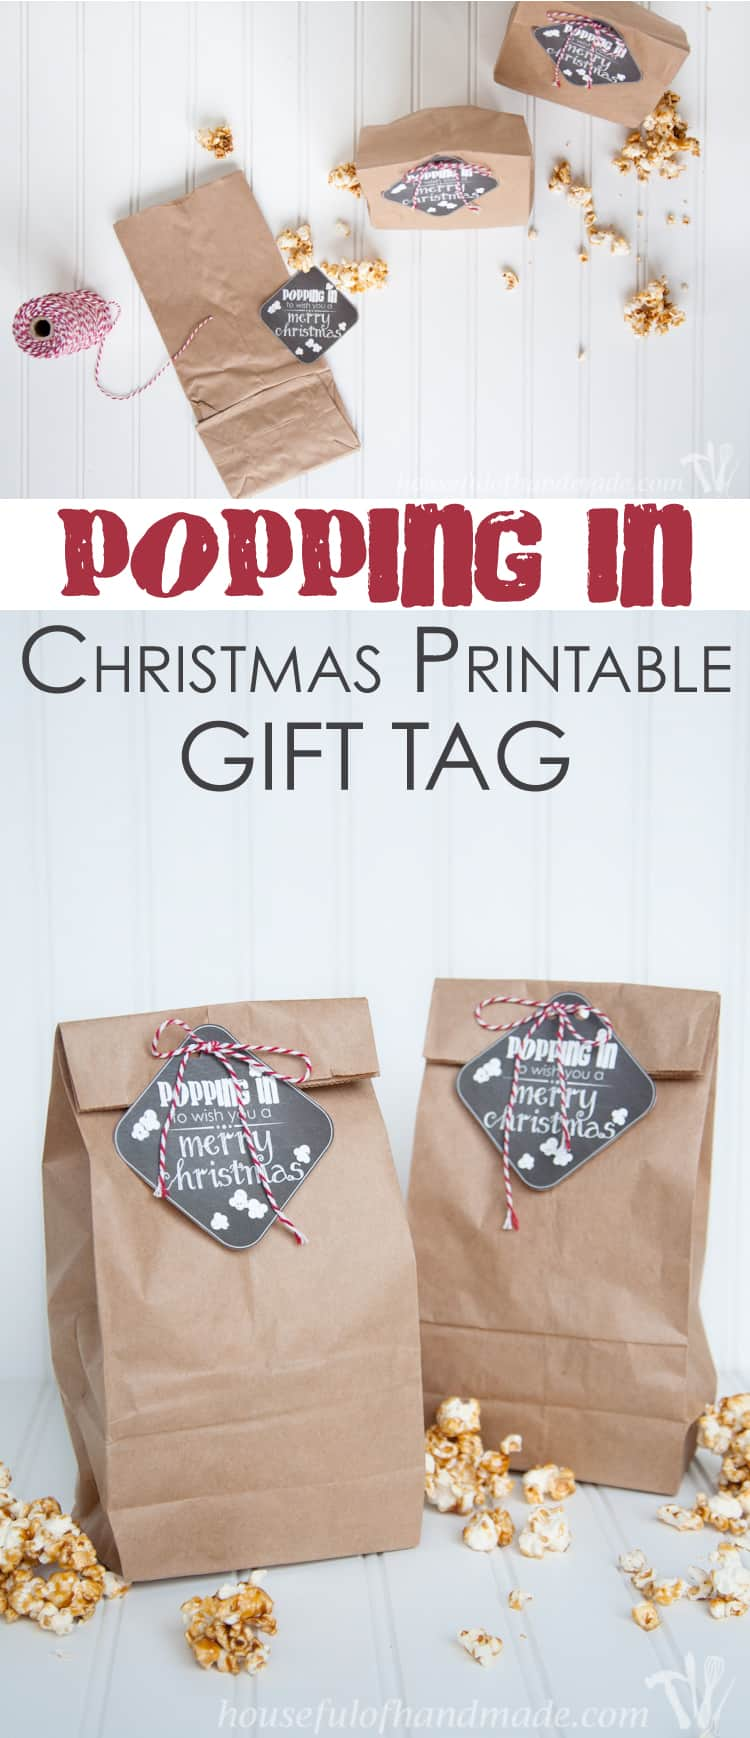 Christmas Printable Gift Tag is the perfect gift idea complete with free printable tags